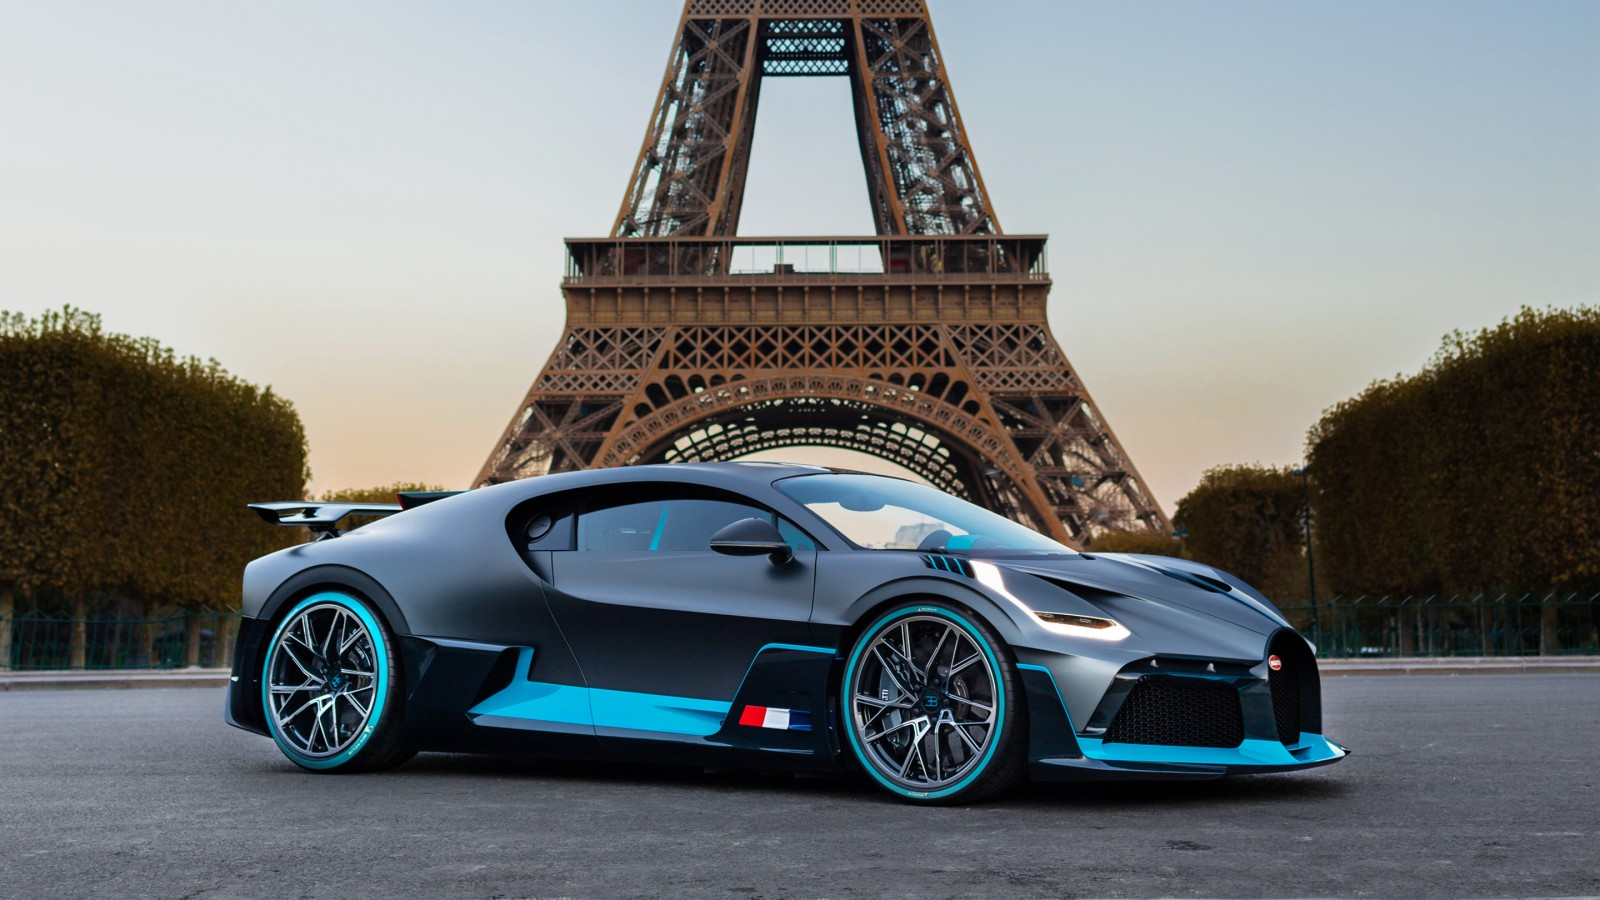 Www Hummer Car Wallpapers Com Bugatti Divo In Paris Wallpaper Hd Car Wallpapers Id